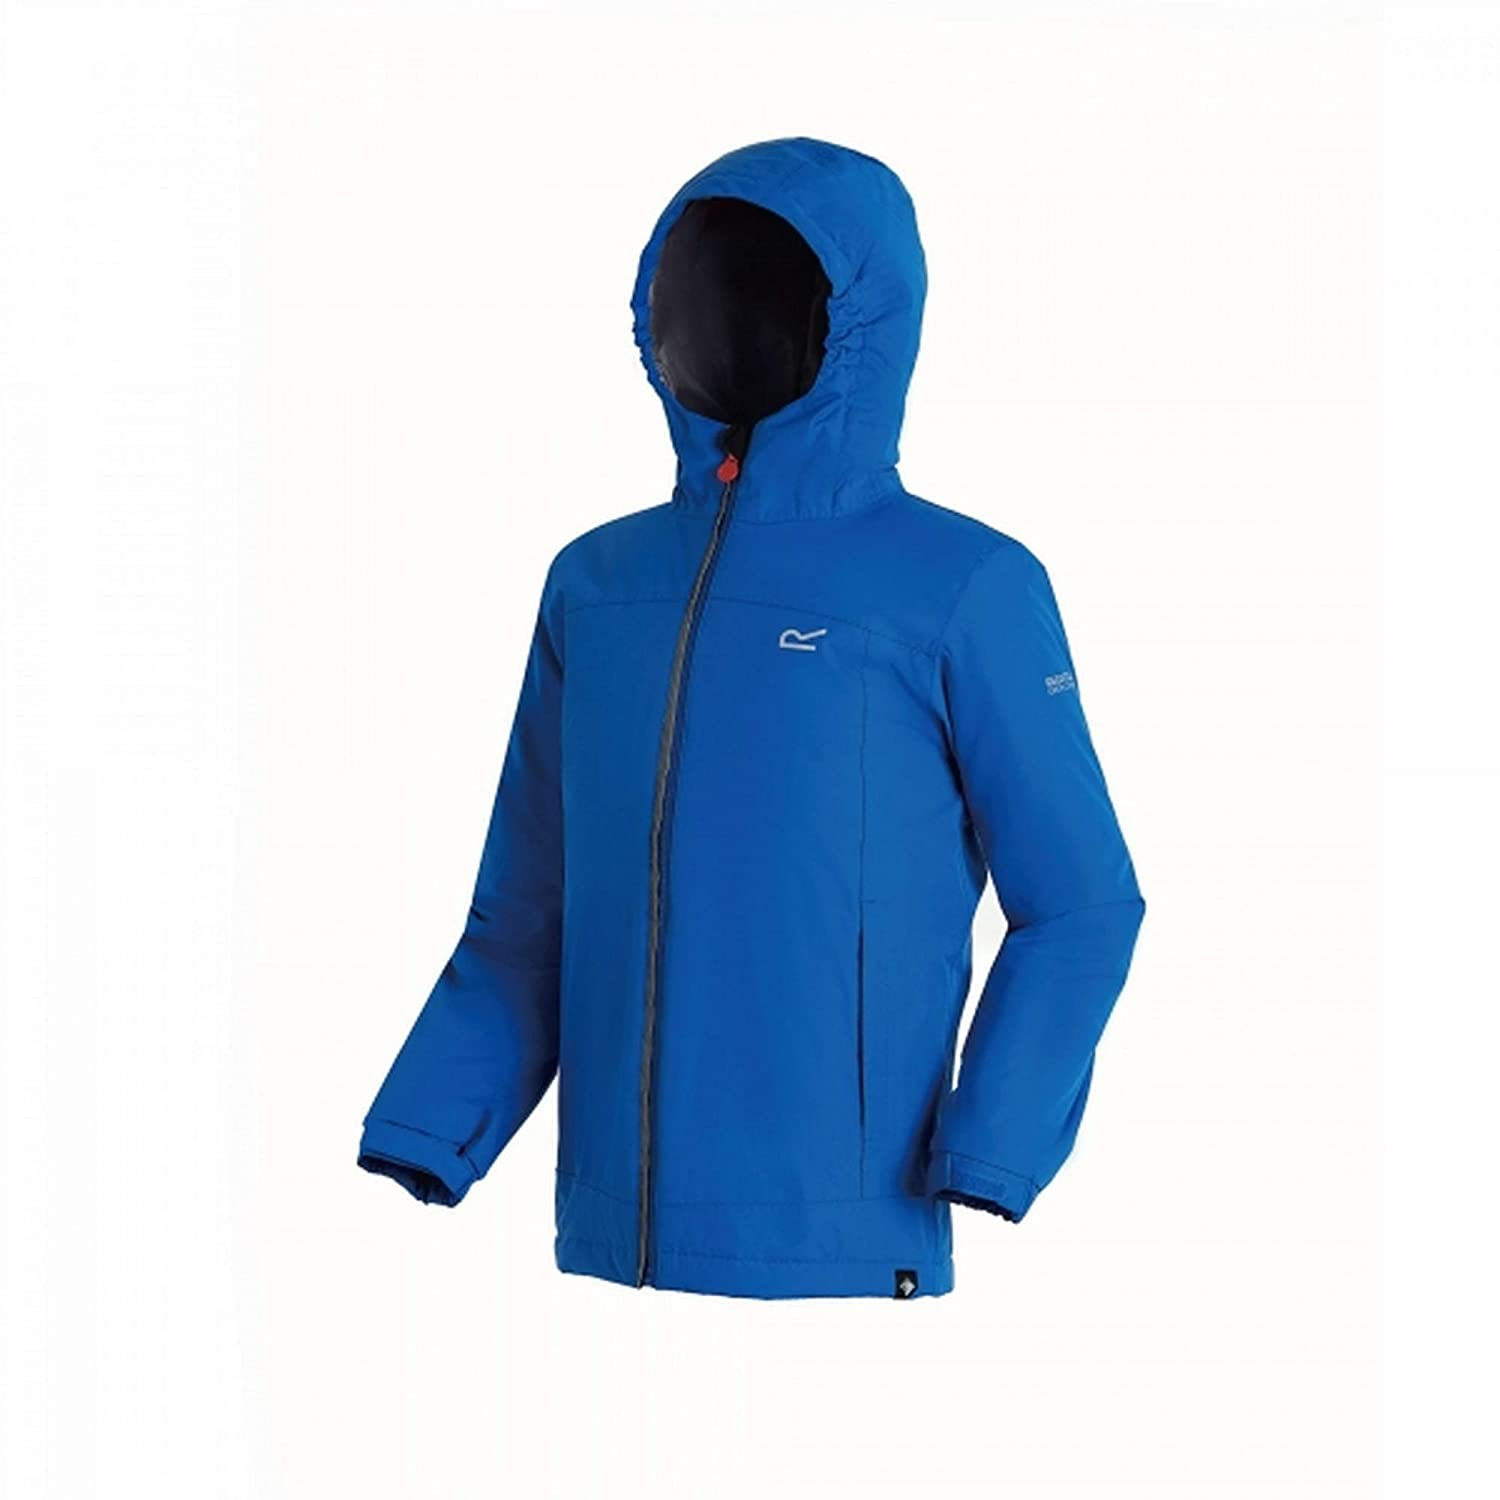 Regatta Childrens/Kids Hurdle II Hooded Jacket